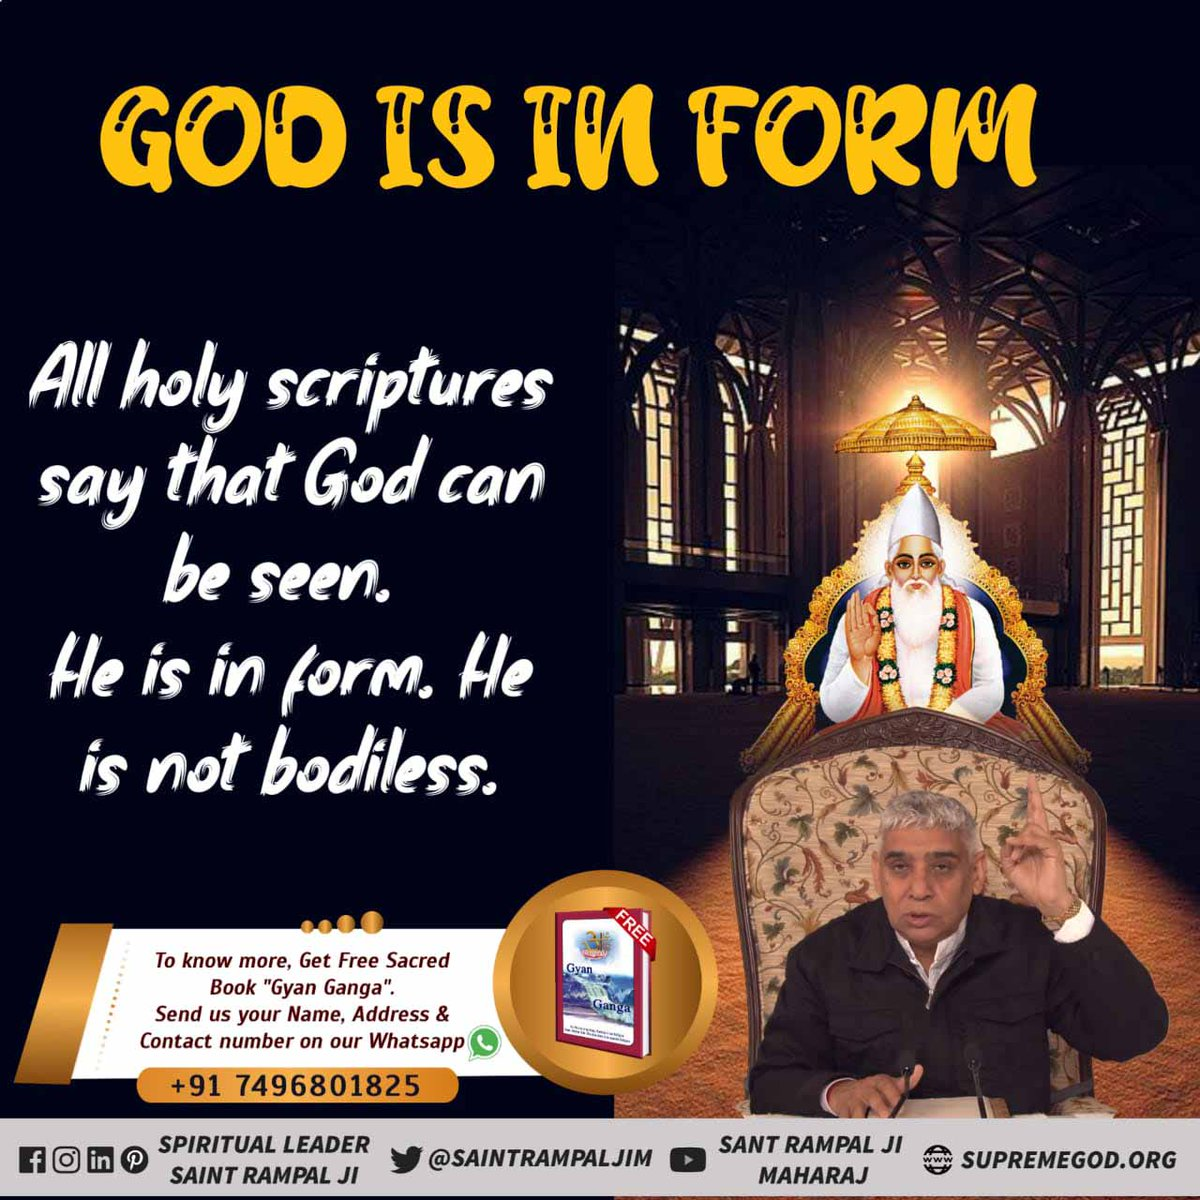 #GreatestGuru_InTheWorld God is in form All holy scripture say that God can be seen.He is in form. He is not bodiless. #MustListen_Satsang  @SaintRampalJiM  #FridayMotivation  #EliminacaoAFazenda